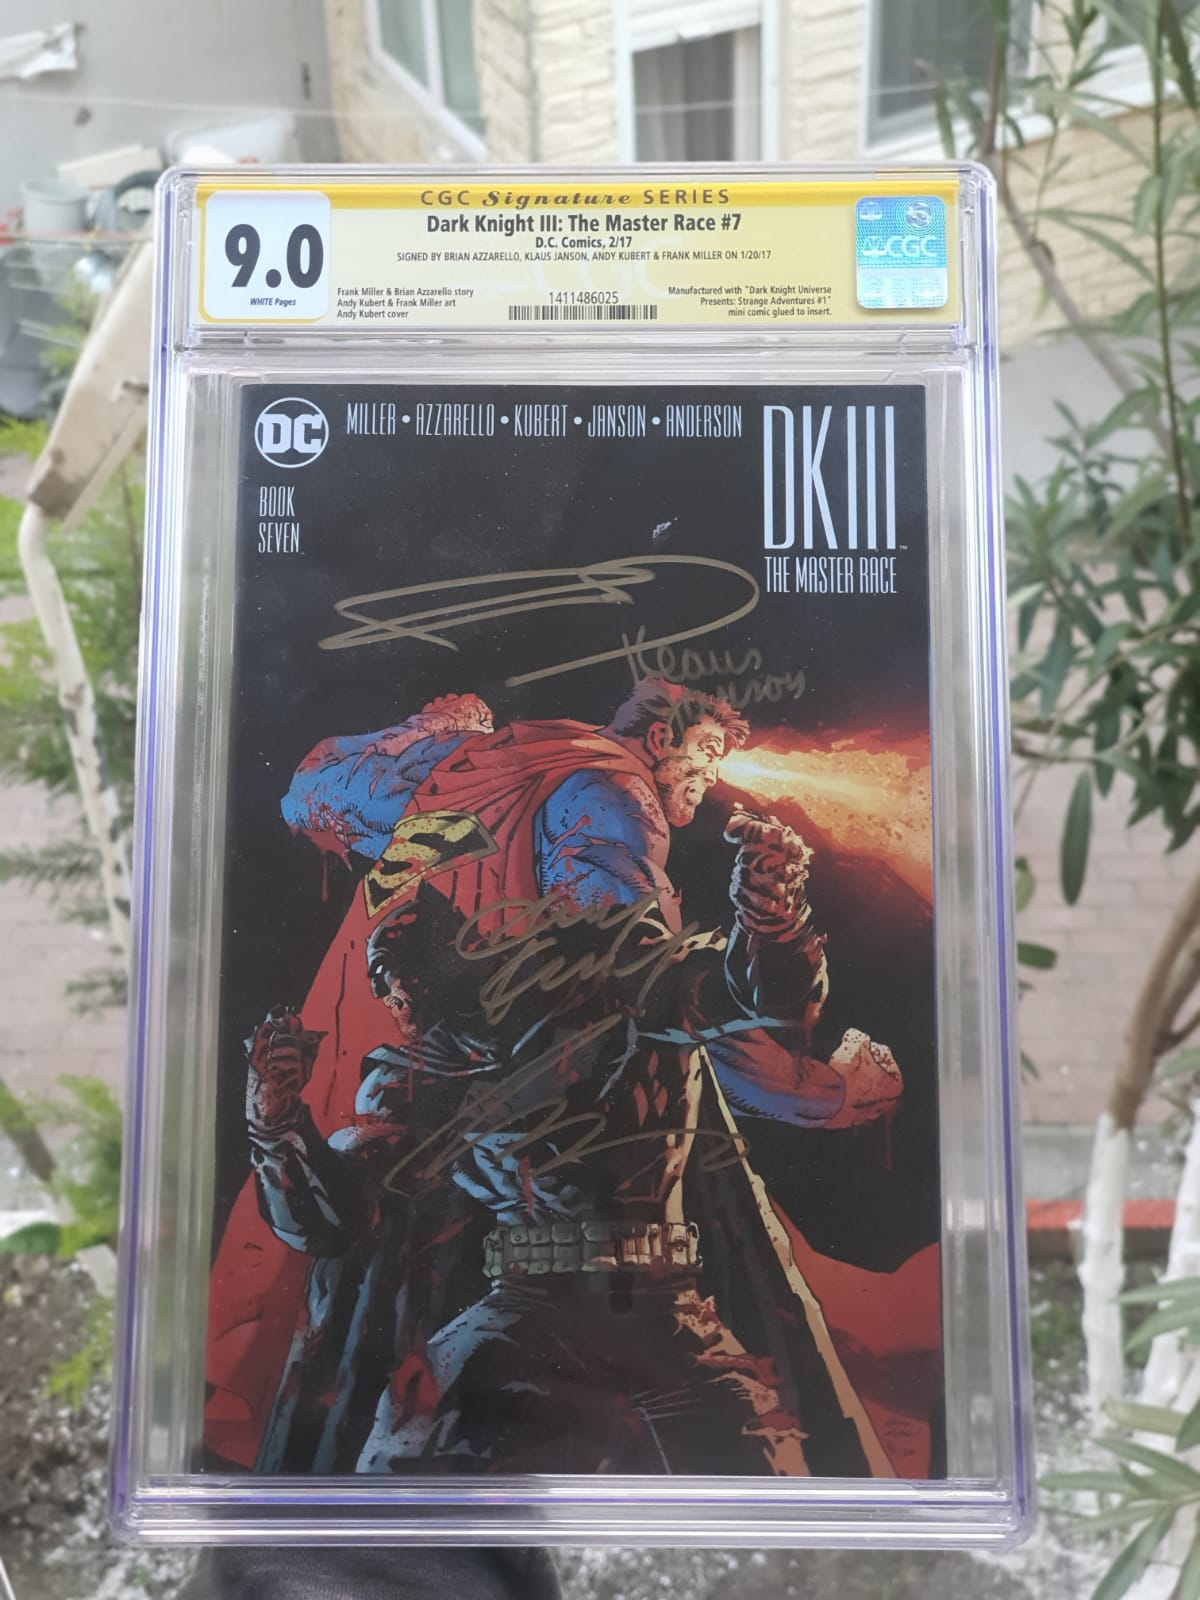 DARK KNIGHT III: THE MASTER RACE #7 CGC 9.0 SIGNATURE SERIES * 4 SIGNS